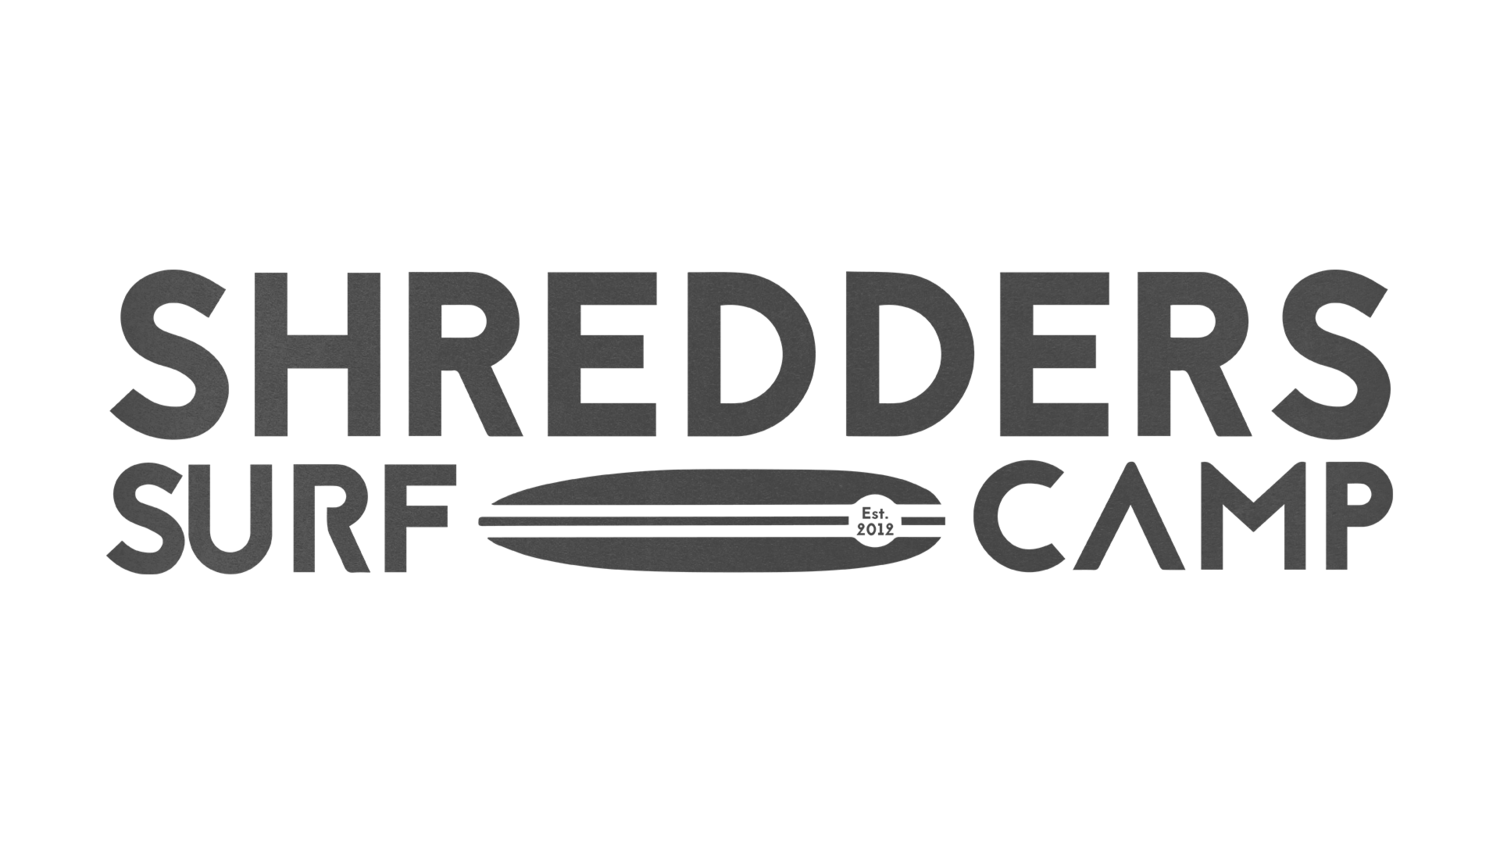 Shredders Surf Camp